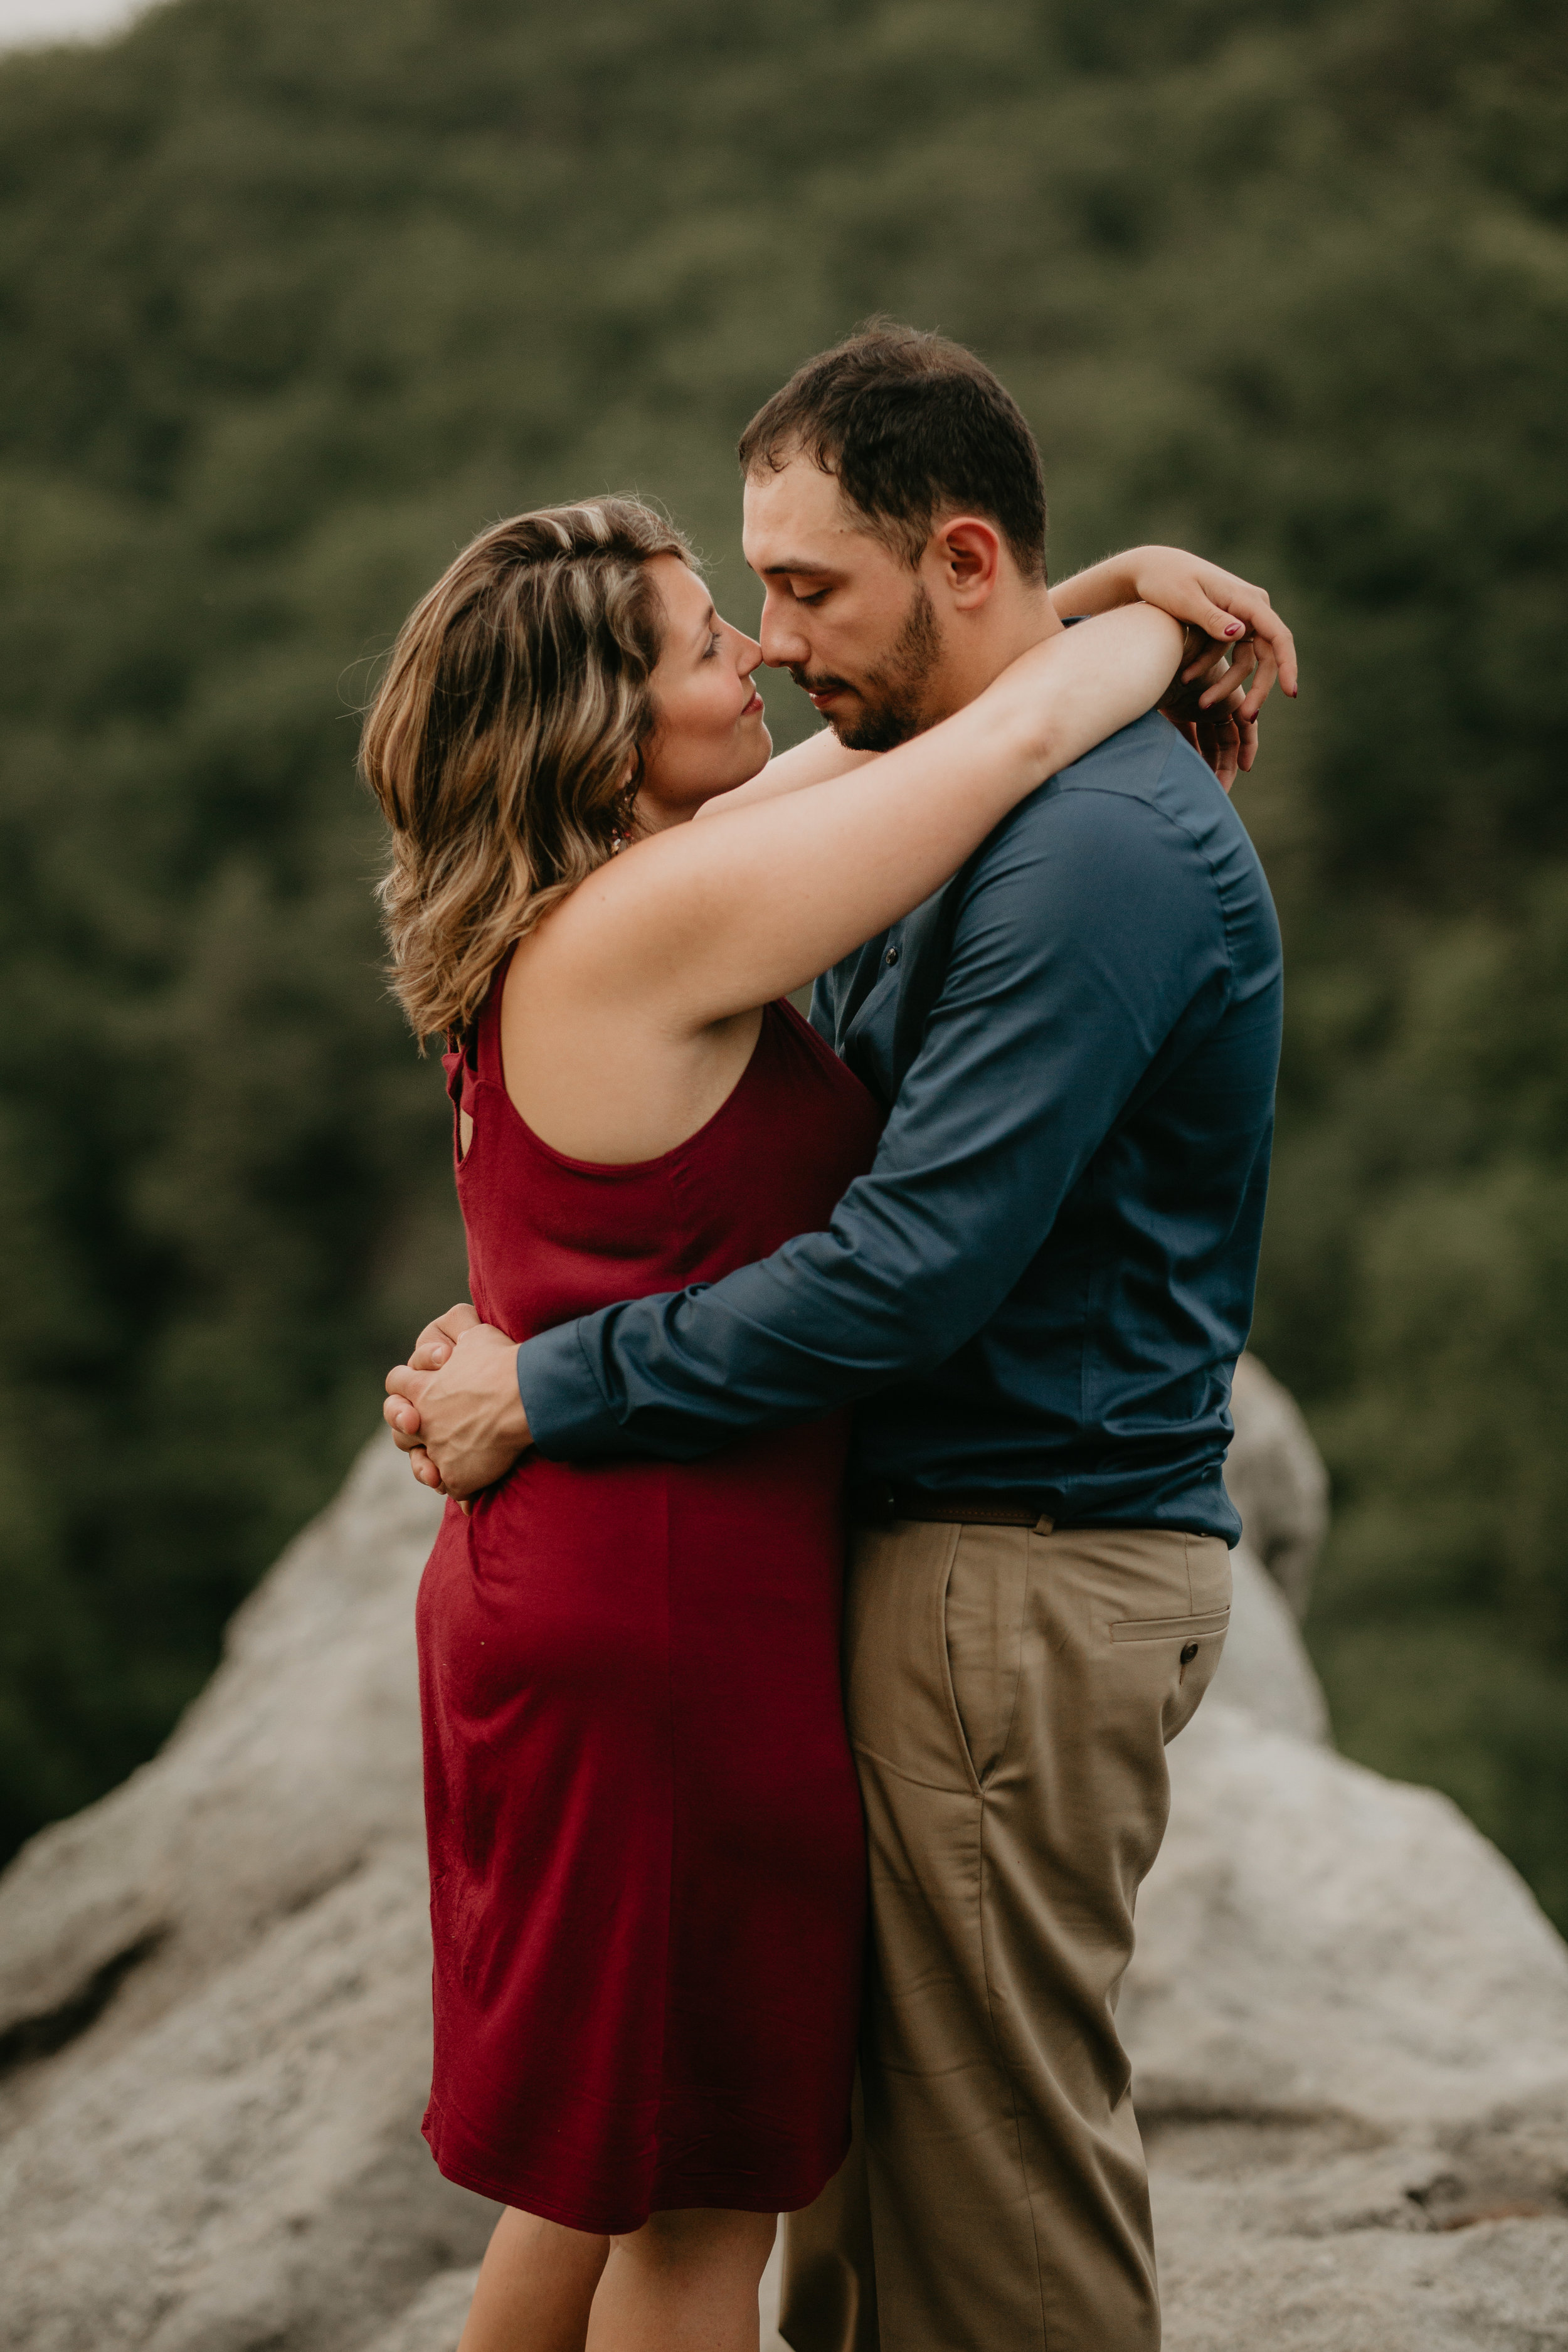 Nicole-Daacke-Photography-rock-state-park-overlook-king-queen-seat-maryland-hiking-adventure-engagement-session-photos-portraits-summer-bel-air-dog-engagement-session-29.jpg